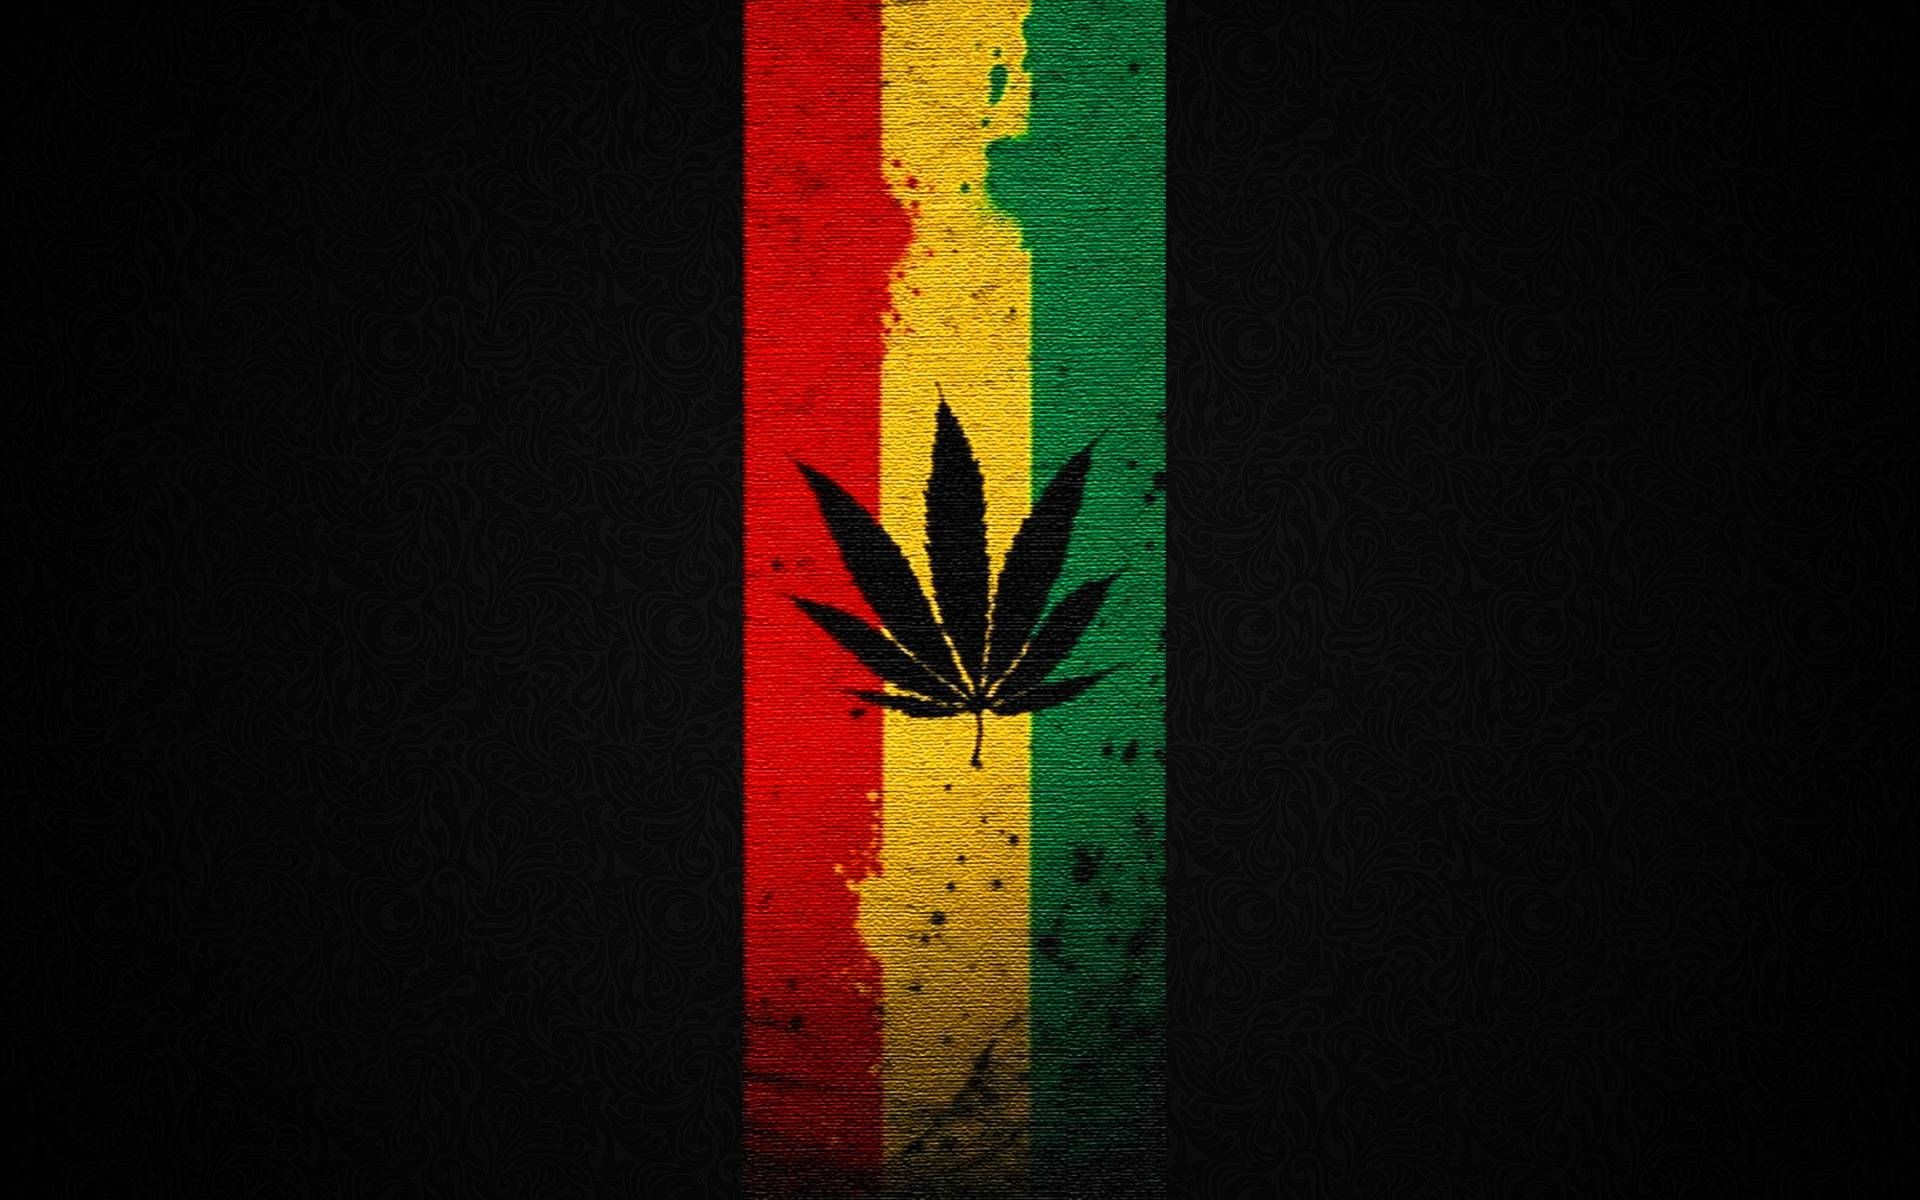 Hd Rasta Wallpapers 78 Background Pictures